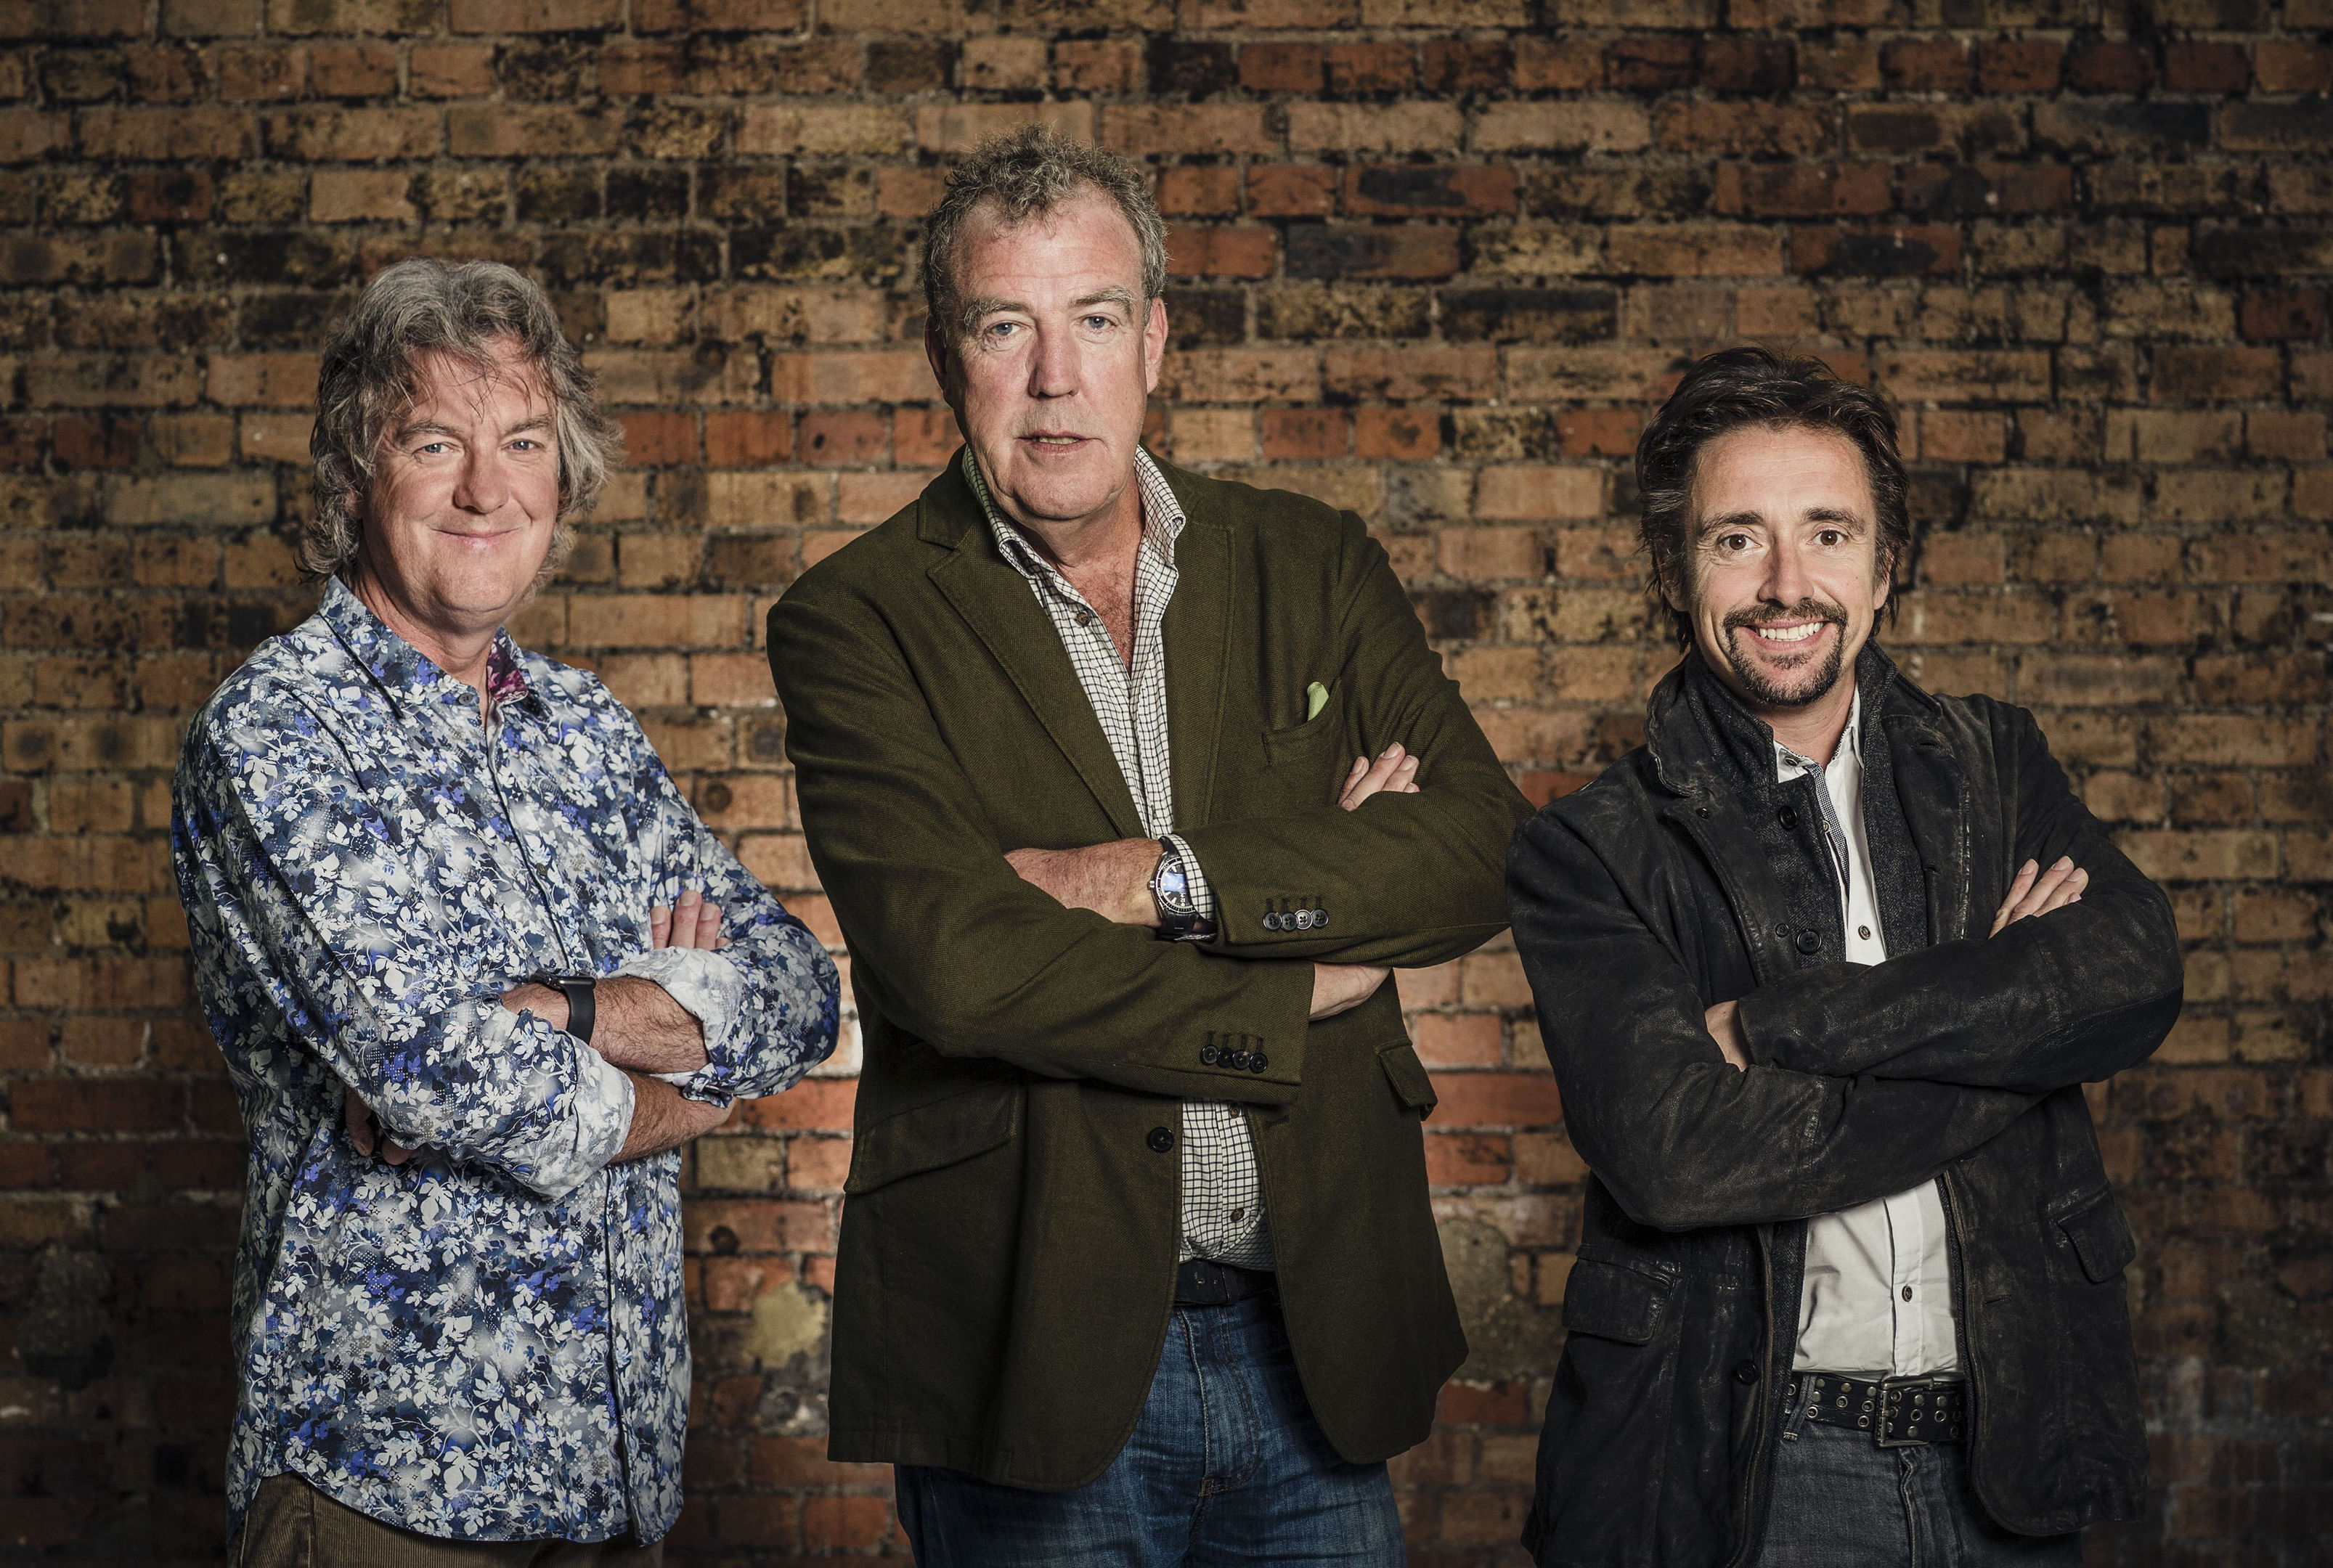 The Grand Tour presenters Jeremy Clarkson, Richard Hammond and James May, have been tackling the North Coast 500 route round the north of Scotland coastline this week.